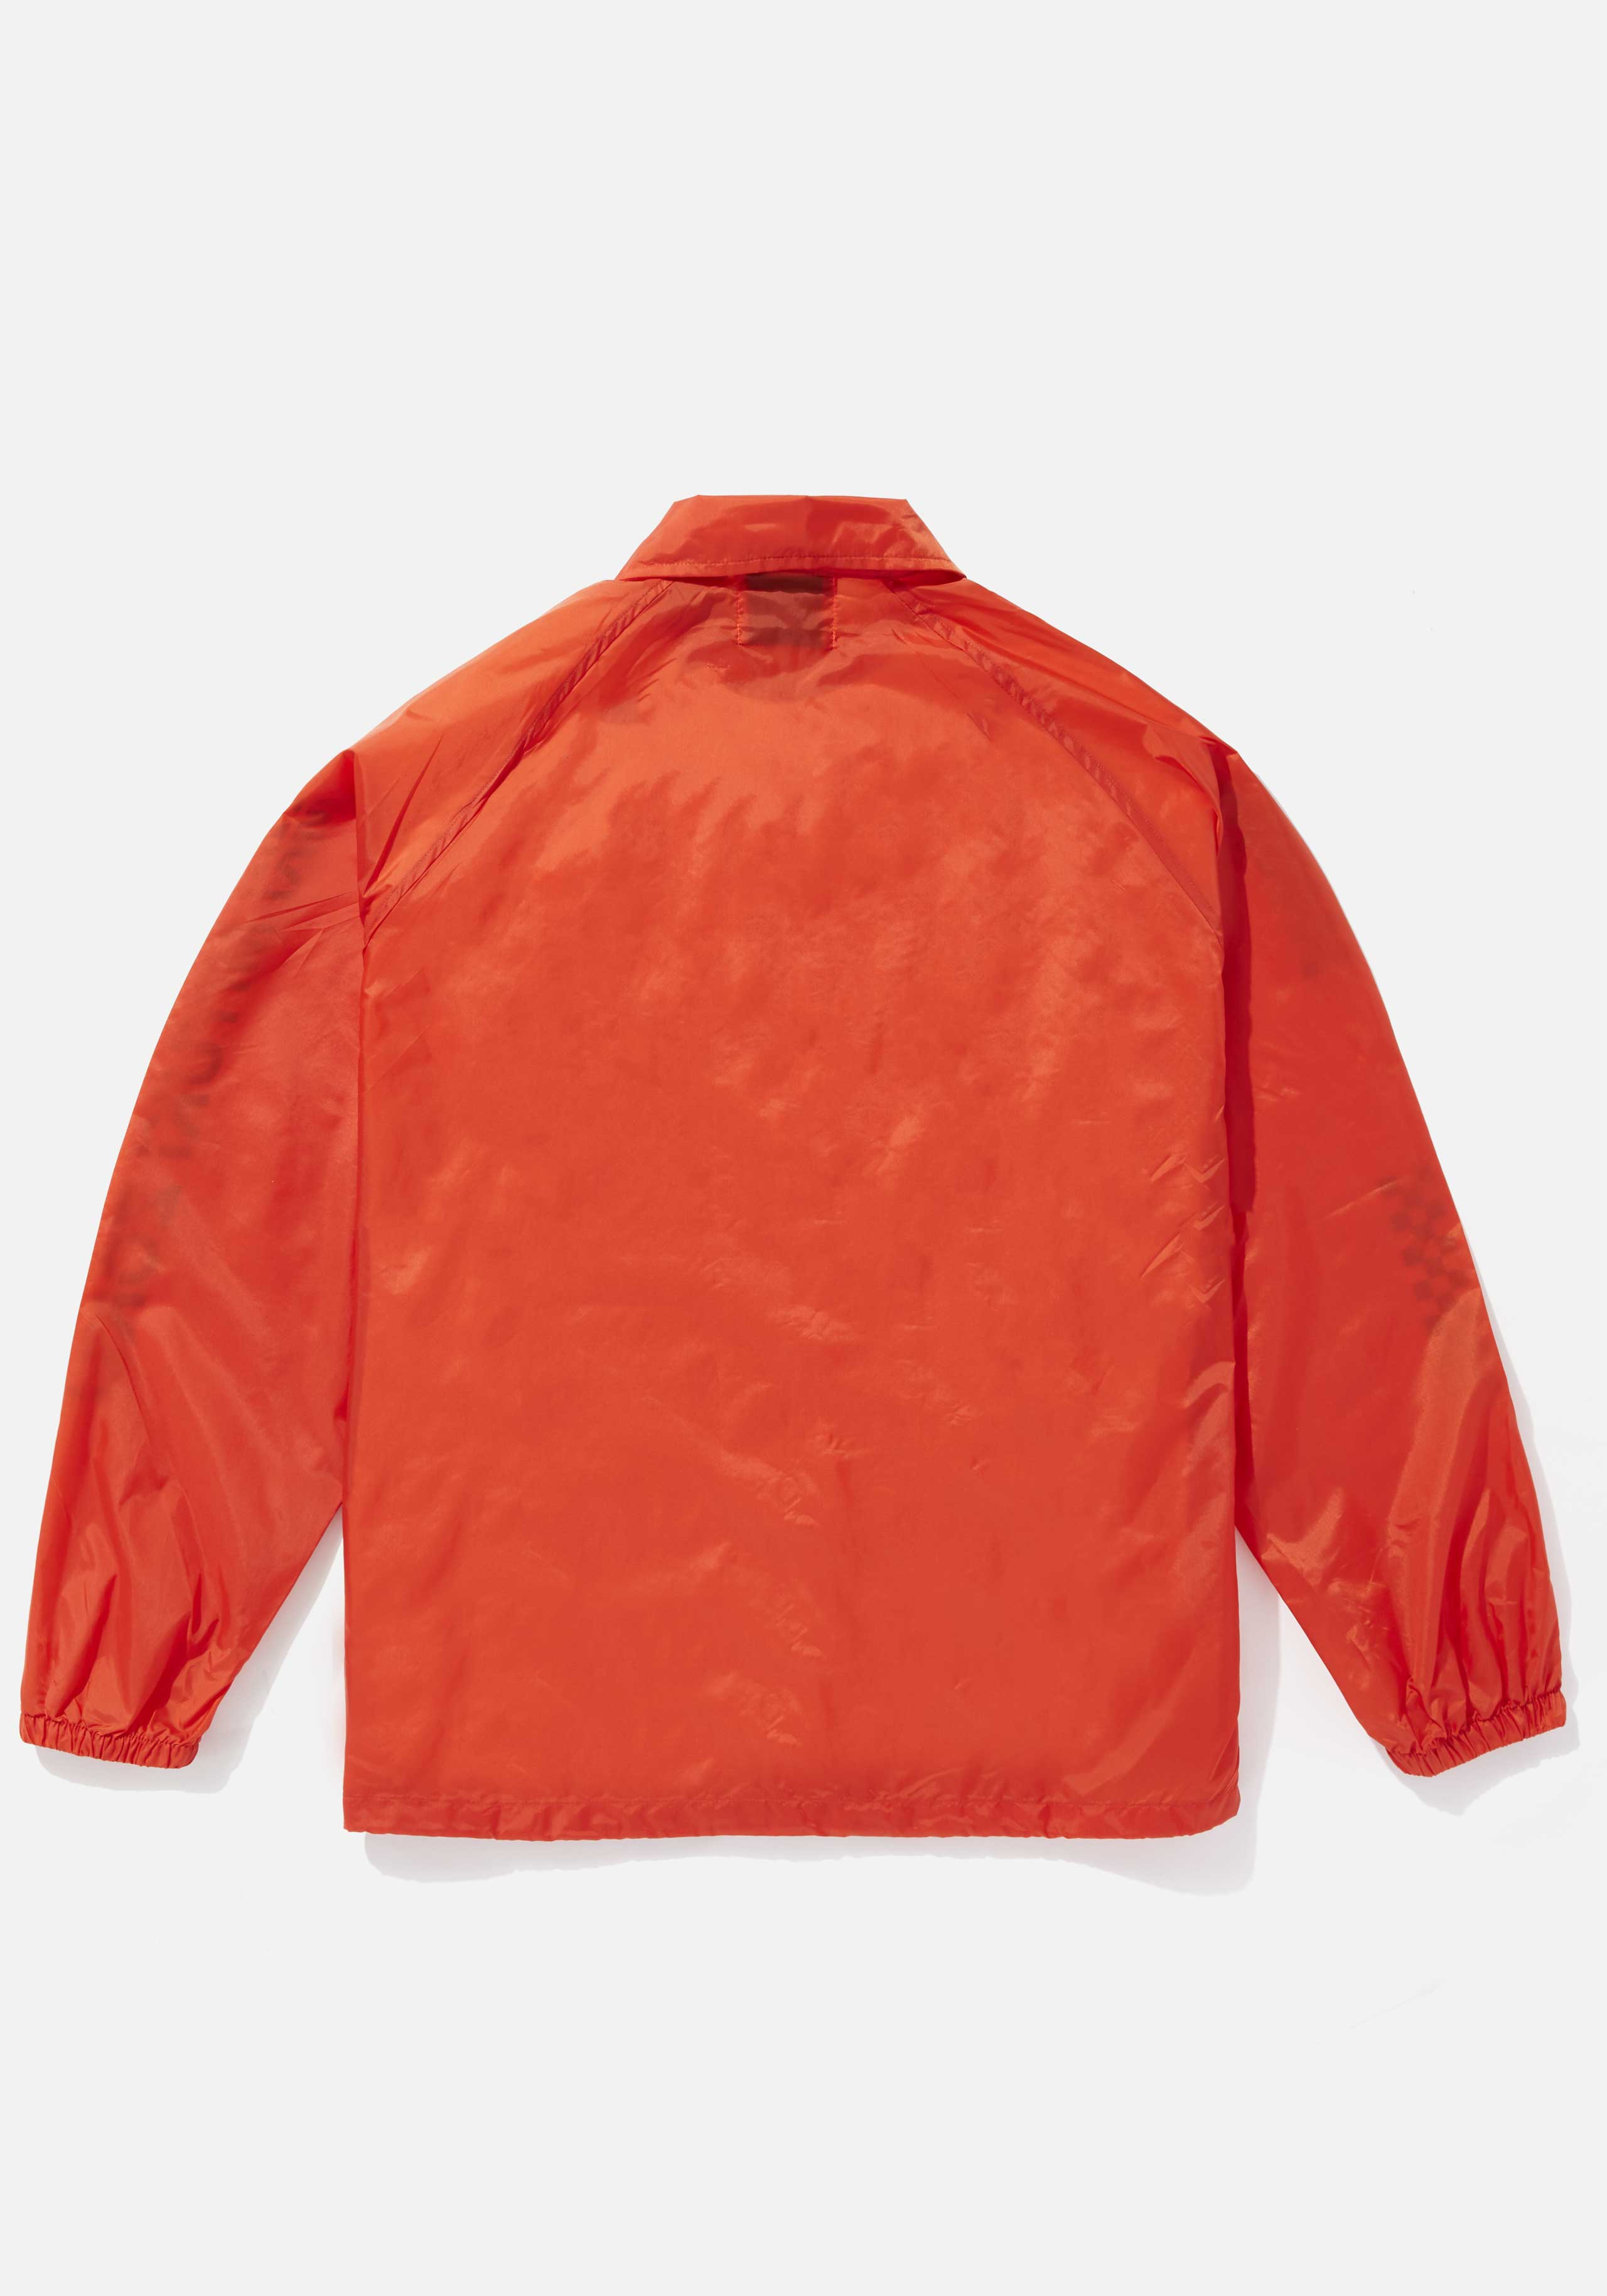 mki racing coach jacket 2